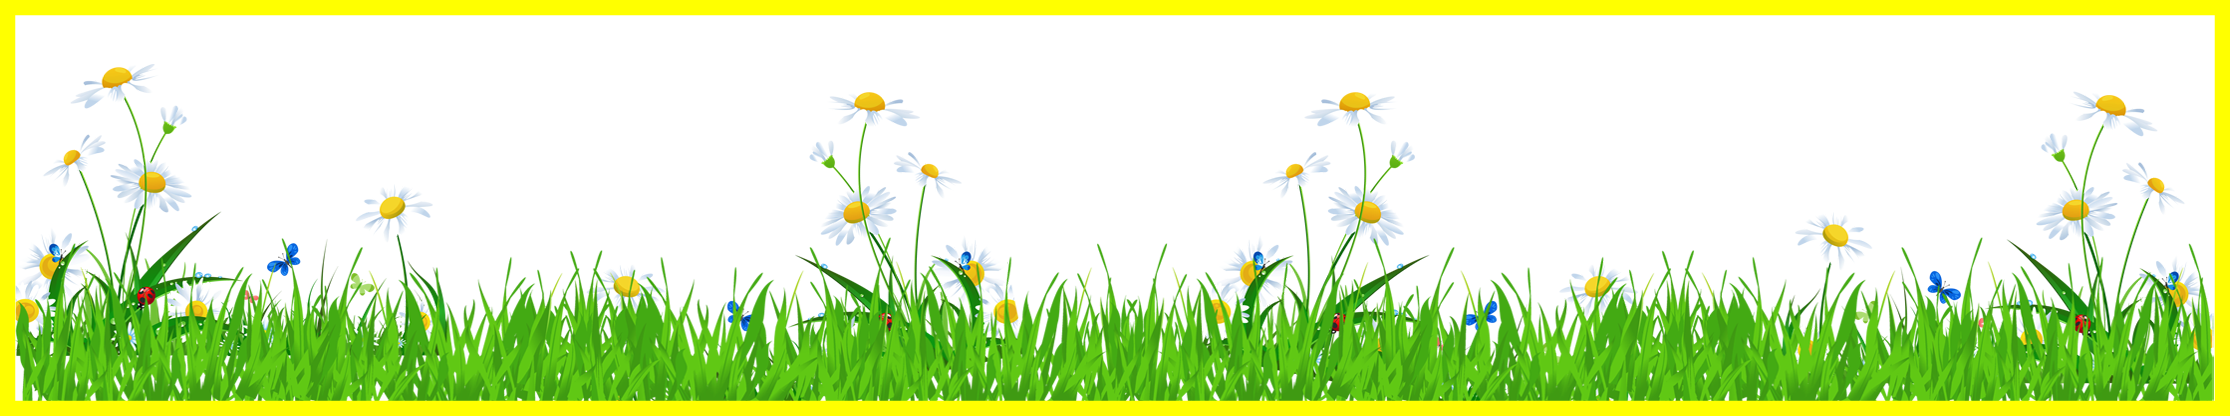 Marvelous grass with daisies. Ladybugs clipart daisy